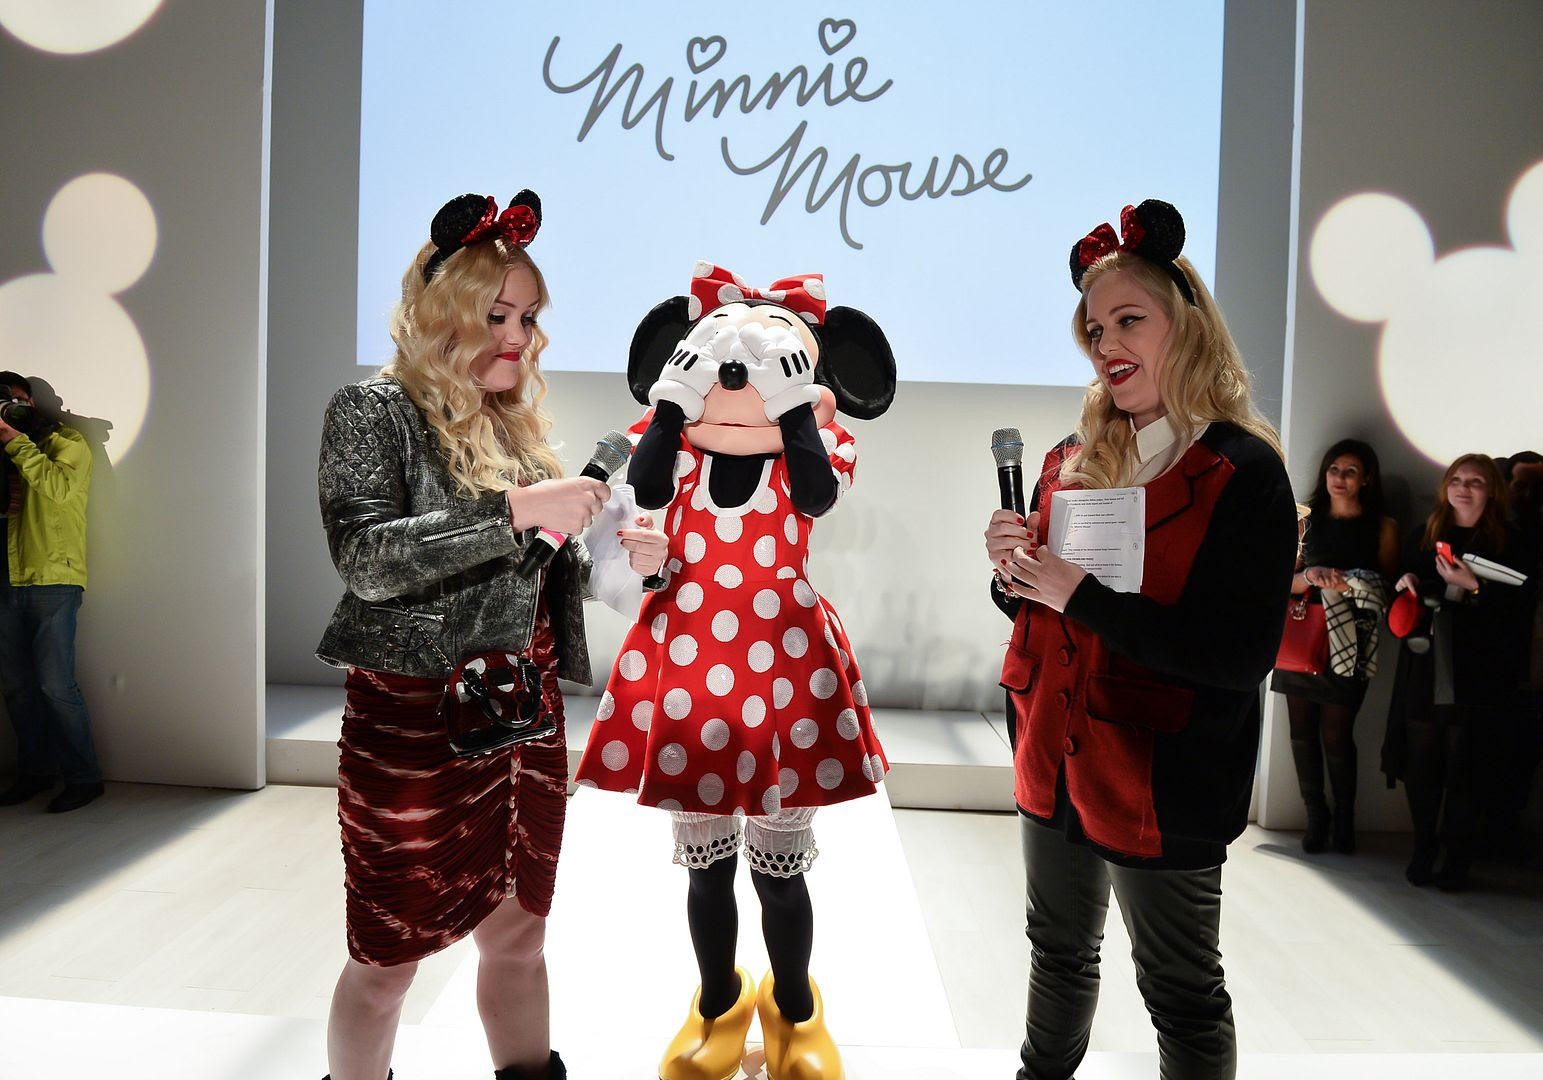 photo minniestyle-minniemouse-disney-beckermanblog-cailliandsambeckerman-disney-worldmastercardfashionweek-toronto-3_zpse68384dd.jpg